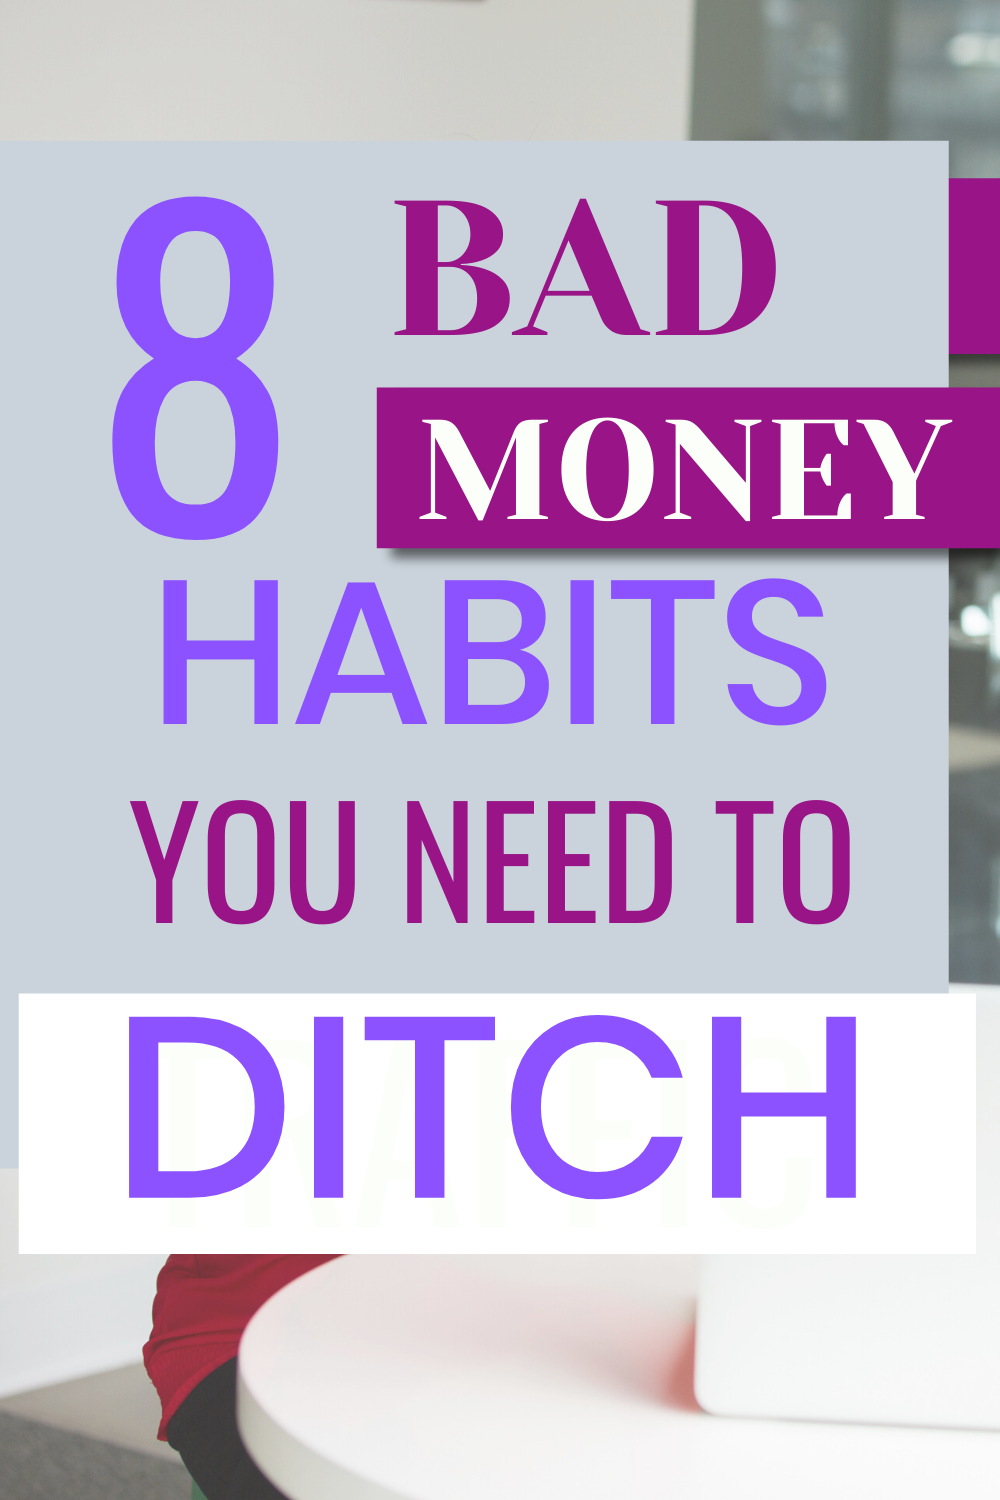 If you are tired of being broke in 2020, you need to stop bad money habits that you are used to. Bad money habits are part of our day to day activities that you need to ditch if you want to become financially dependent in 2020. If your goal in 2020 is to save more money, then you are in luck as we are going to look at 8 bad money habits that you need to ditch in 2020. Many people find it hard to save money, and if you are part of this group, you need to start practicing how to save money every month. 8 BAD MONEY HABITS THAT YOU NEED TO DITCH IN 2020 There are proven ways that you can employ to stop living from one paycheck to another paycheck.  1.	Lack of Budgeting Lack of budgeting is the main culprit why many people find it hard to save money every month. This is the very first bad money habit that you need to stop. When you have a budget, you are in control of your finance and can help you to reduce your spending because you know how much you are spending in a month. 2.	Paying your bills late Another bad habit that you need to stop in 2020 is the late payment of the bill. For every day that you delay your bill payment, there is an extra interest that can affect your finances very badly. Once you write down your monthly budget, you can look at the due date of the bill and pay before the due date.  Another way of avoiding late payment or extra payment of the bill is for you to register for their auto-payment plan.  3.	Not buying when there is a promo  If you are seriously considering reducing your monthly running cost, then you need to start planning ahead by buying what you need during promo day. You should also be on the lookout for a coupon that you can use to reduce the price. Another tactic for you that you can use to reduce your spending is for you to join your Facebook groups full of people who are looking for coupons. 4.	Paying for subscription and membership that you don't need Take a look at your monthly expenses and you will discover that there are subscription and membership that you are not using but you keep on paying for it every month. 5.	Impulse buying Most people buy things they don't need because they like the product. Buying any things that you like would drain your finance and you need to stop these bad money habits in 2020. 6.	Not having an emergency fund Emergency funds are money you set aside when an emergency arises and you need money badly.  Most people don't have an emergency fund and when an emergency arises, they borrow money which is bad for their finance. If you want to avoid being broke in 2020, you need to set aside some part of your income as an emergency fund. 7.	Relying on credit cards When you rely on credit cards every month for your basic needs, you are simply put a noose around your neck. The money you spent when you use your credit will be higher compare to using your cash. The credit card comes with a high interest rate and affects your ability to save money. 8.	Not making enough money If you dream of financial freedom, you need to make more money than you need. You can save the extra money you make for an emergency fund or investment fund. There are a lot of ways that you can use to make extra money online, this include: Virtual assistant Blogging and vlogging Completing survey and task Teaching the English language online Bad habits are very hard to break, but if you are determined to avoid being broke again, you need to avoid these bad habits and watch as your savings increase.